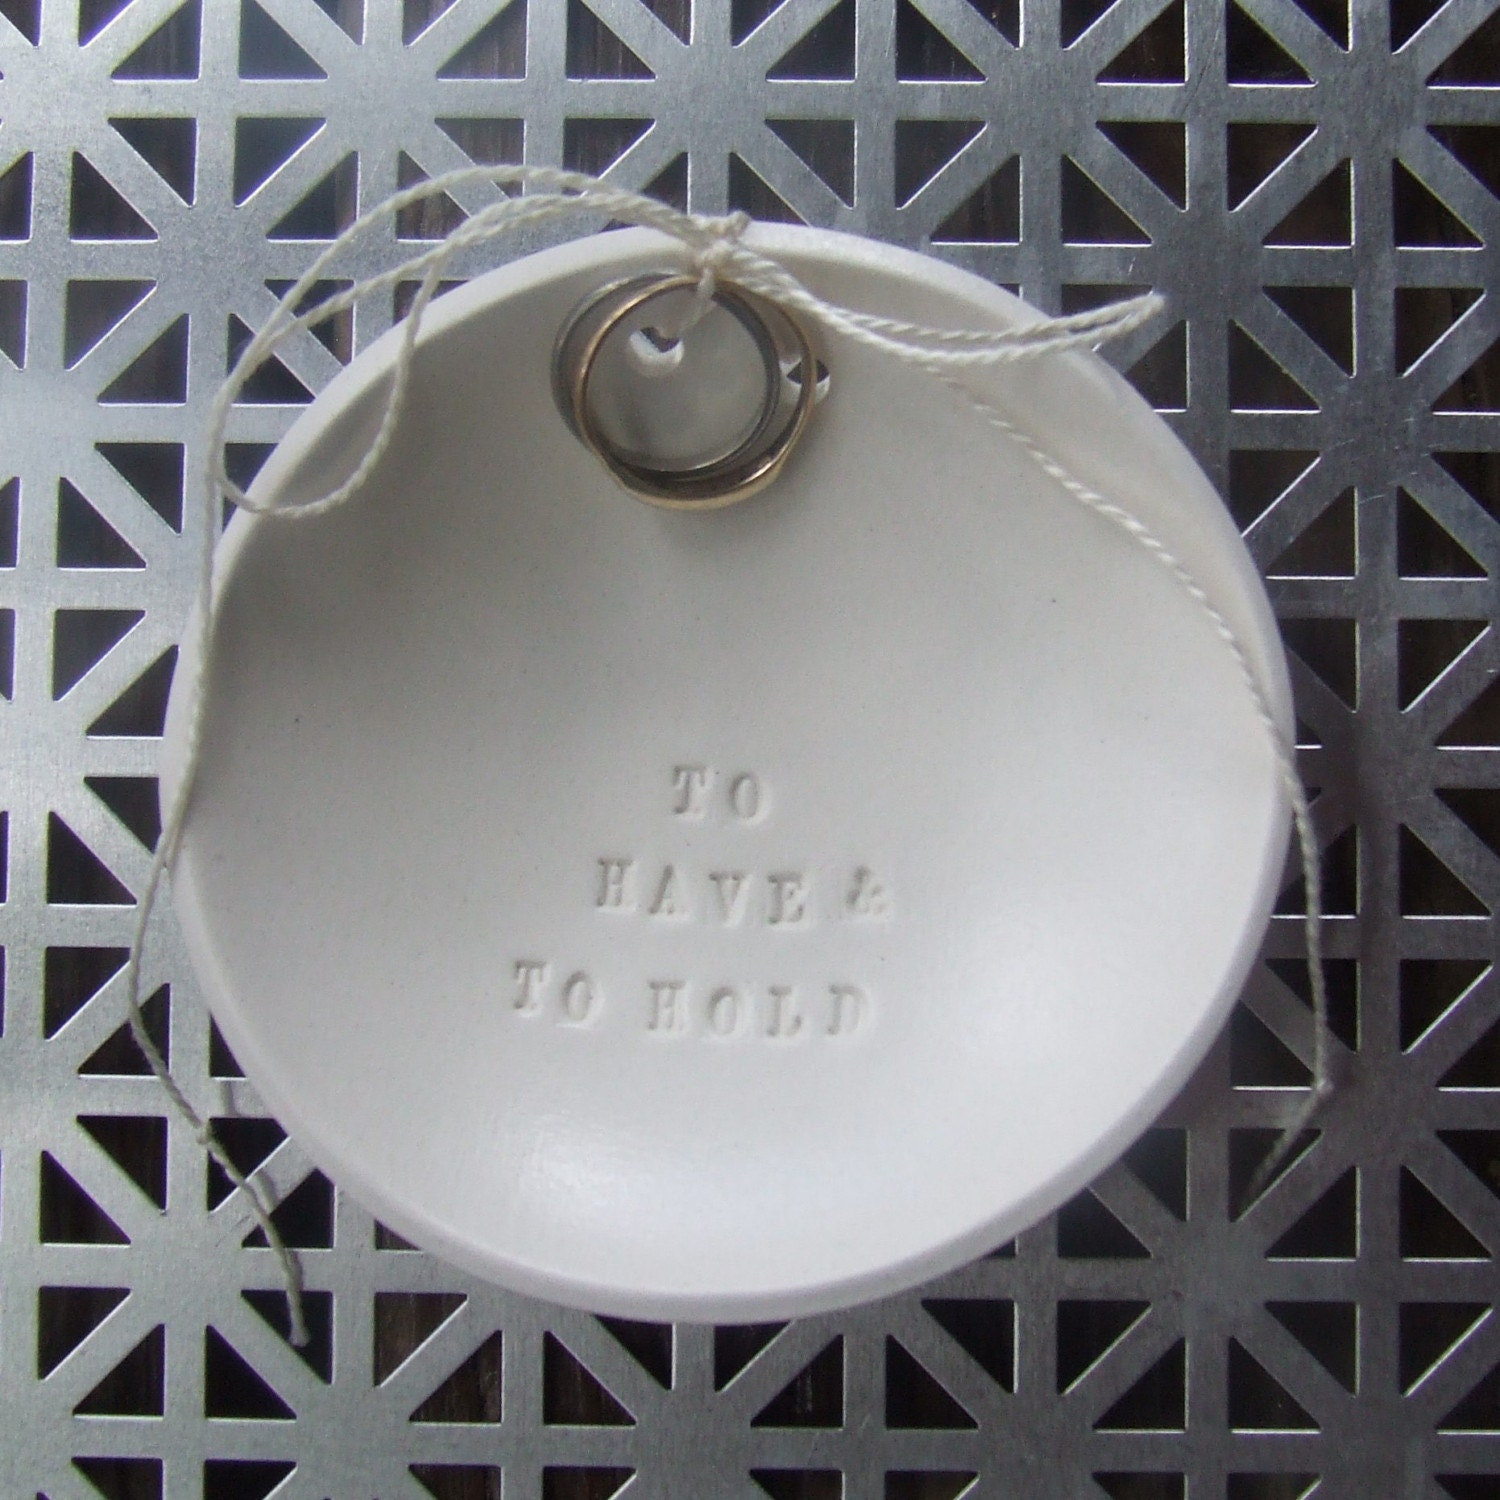 TO HAVE AND TO HOLD ring bearer bowl with tiny text - wedding or commitment ceremony dish - the original modern heirloom by Paloma's Nest